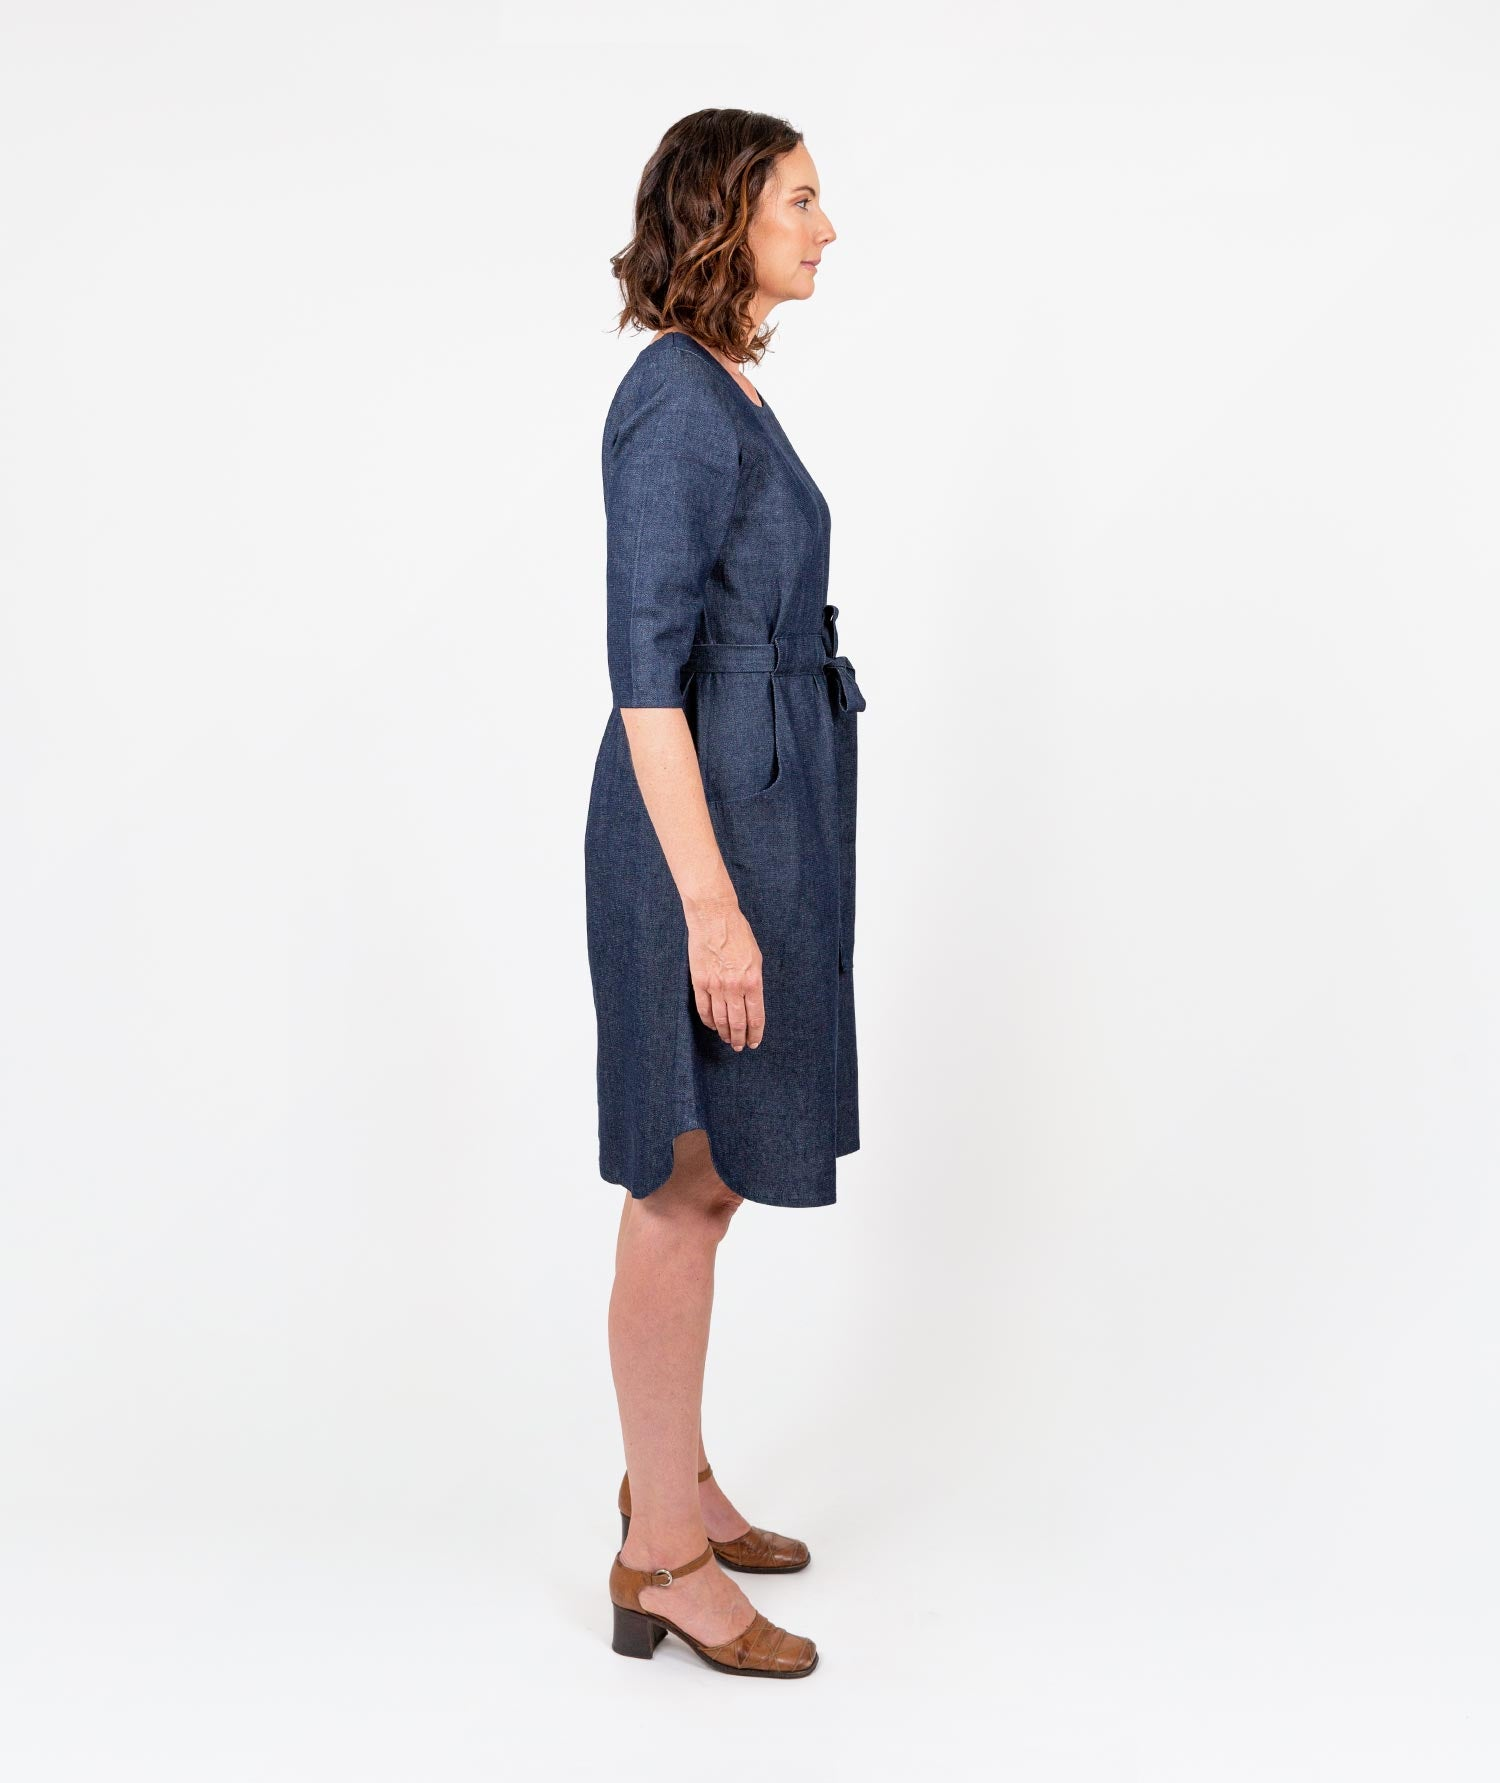 Revolution Denim Dress by Holi Boli